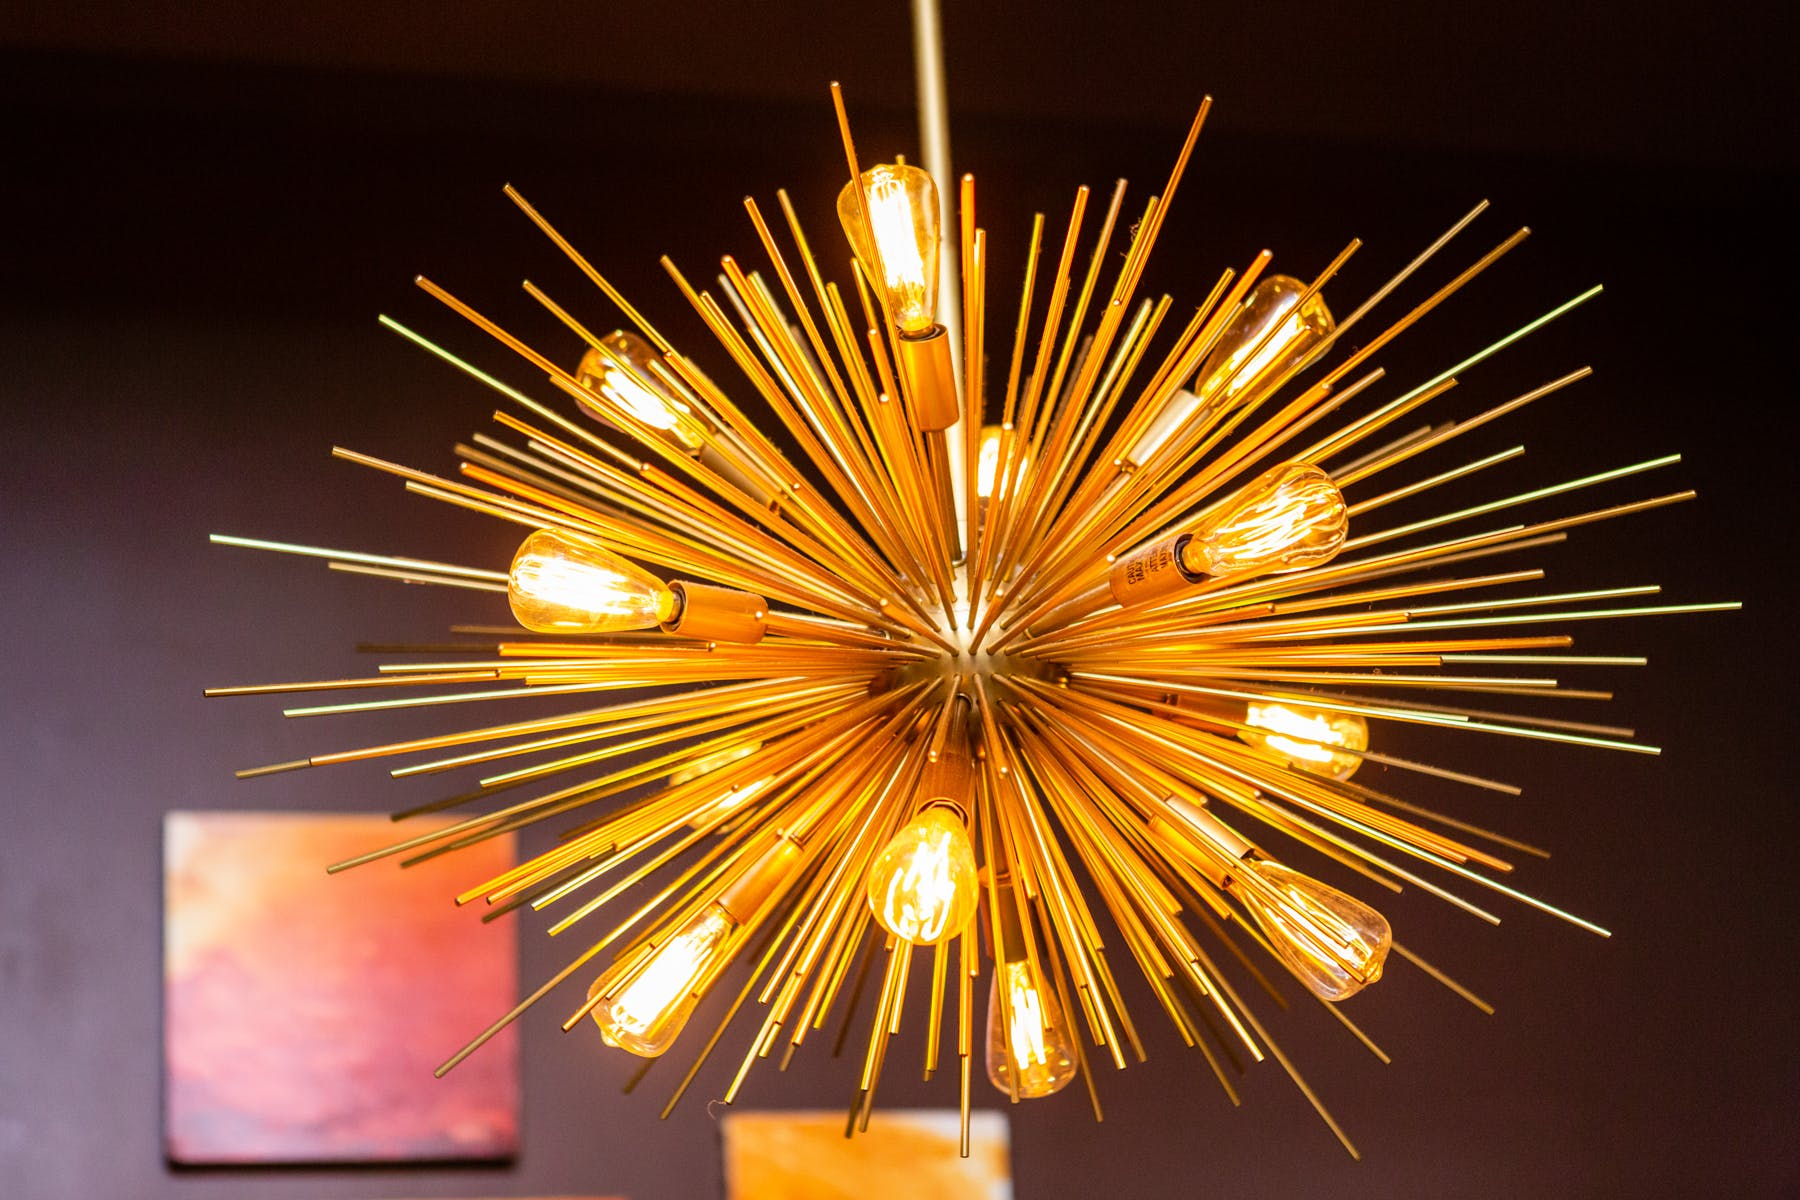 a close up of a firework-looking chandelier